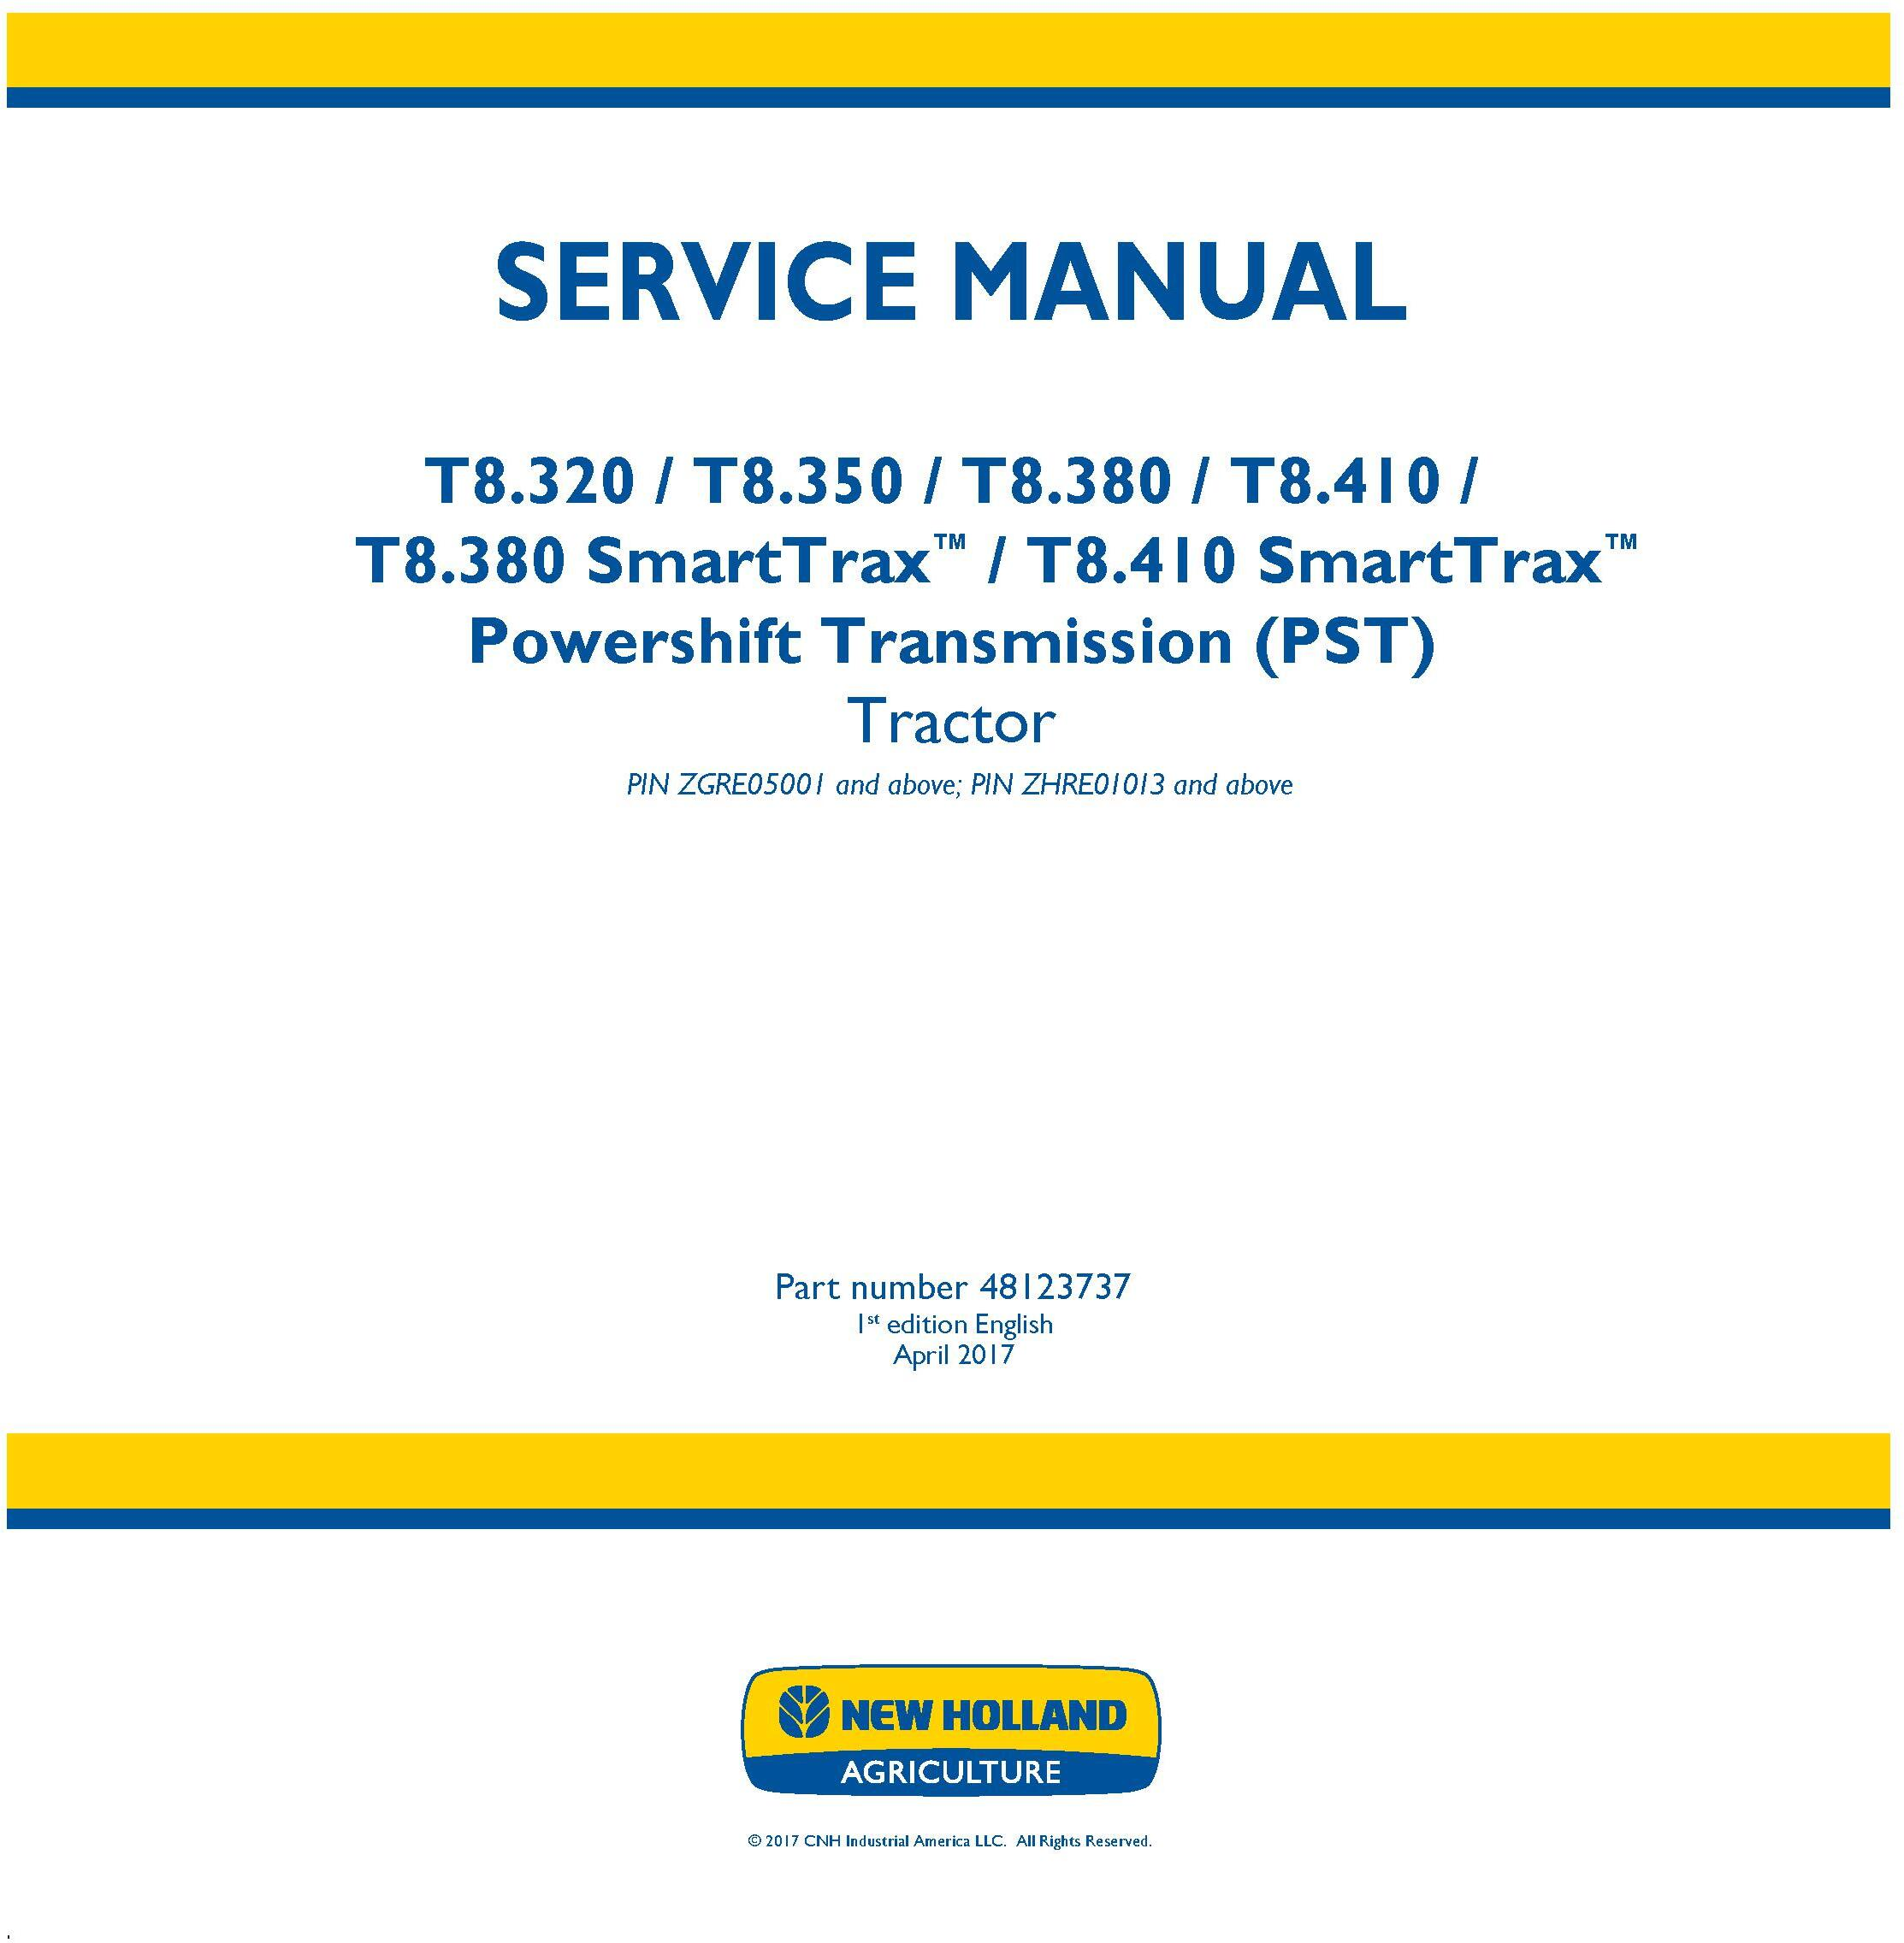 New Holland T8.320, T8.350, T8.380, T8.410 and SmartTrax, Tier 2 with PST Tractor Service Manual - 19497